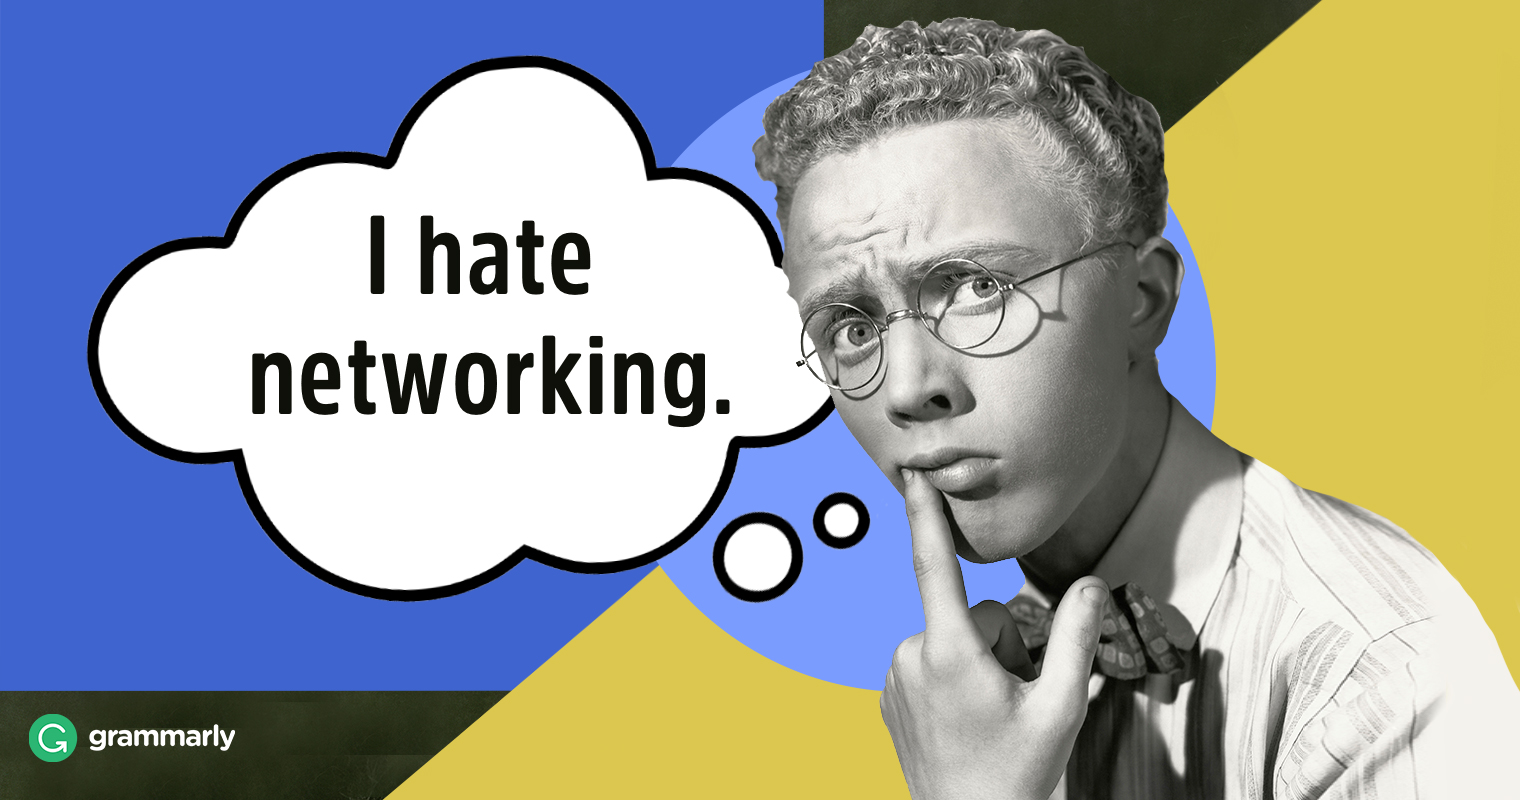 10 Networking Tips for People Who Hate Networking image